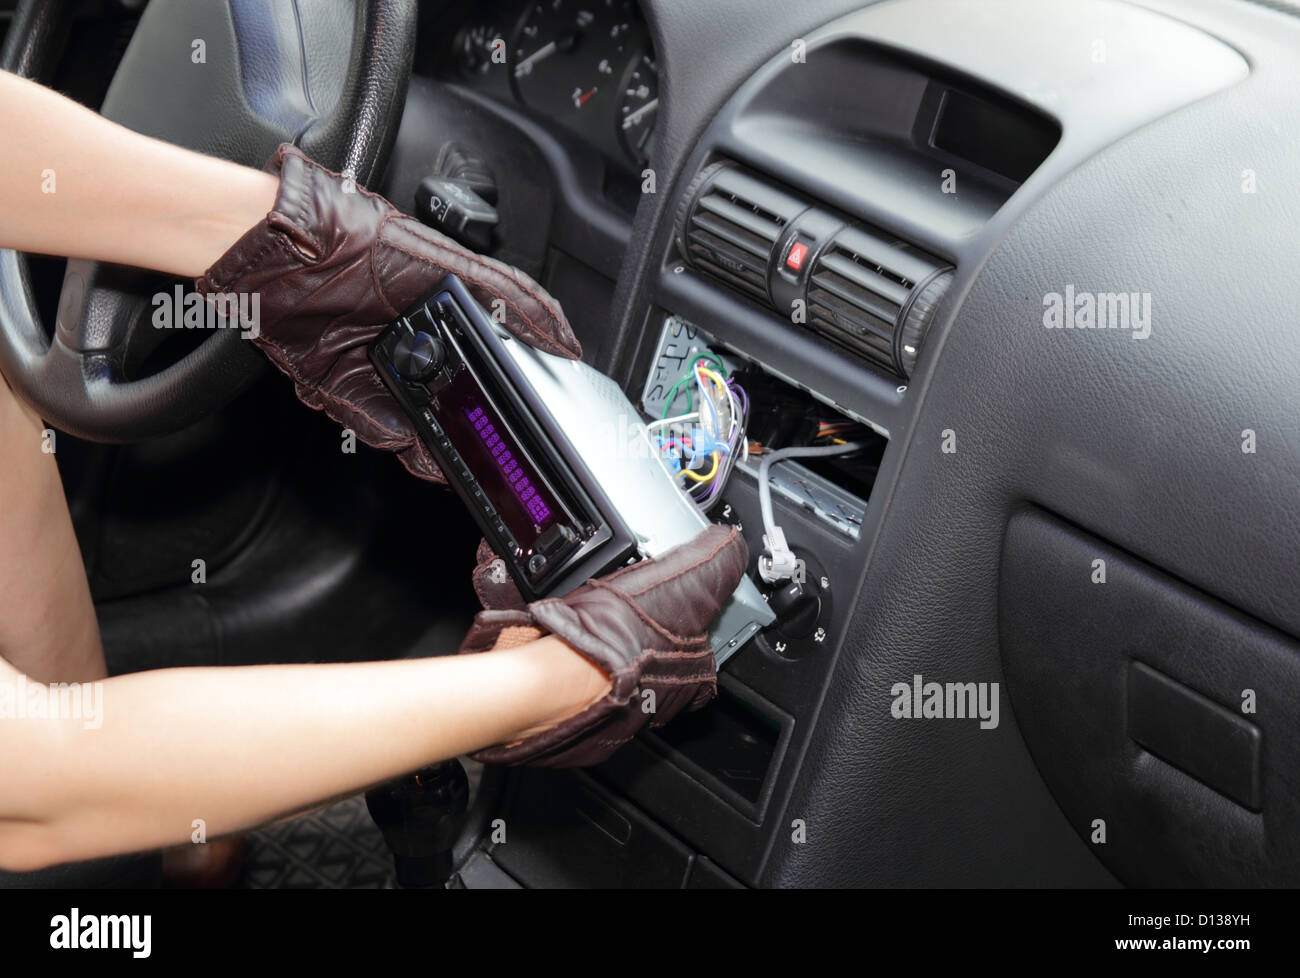 Gloved hands of a thief stealing a car radio from the dashboard of a car with the wiring exposed - Stock Image